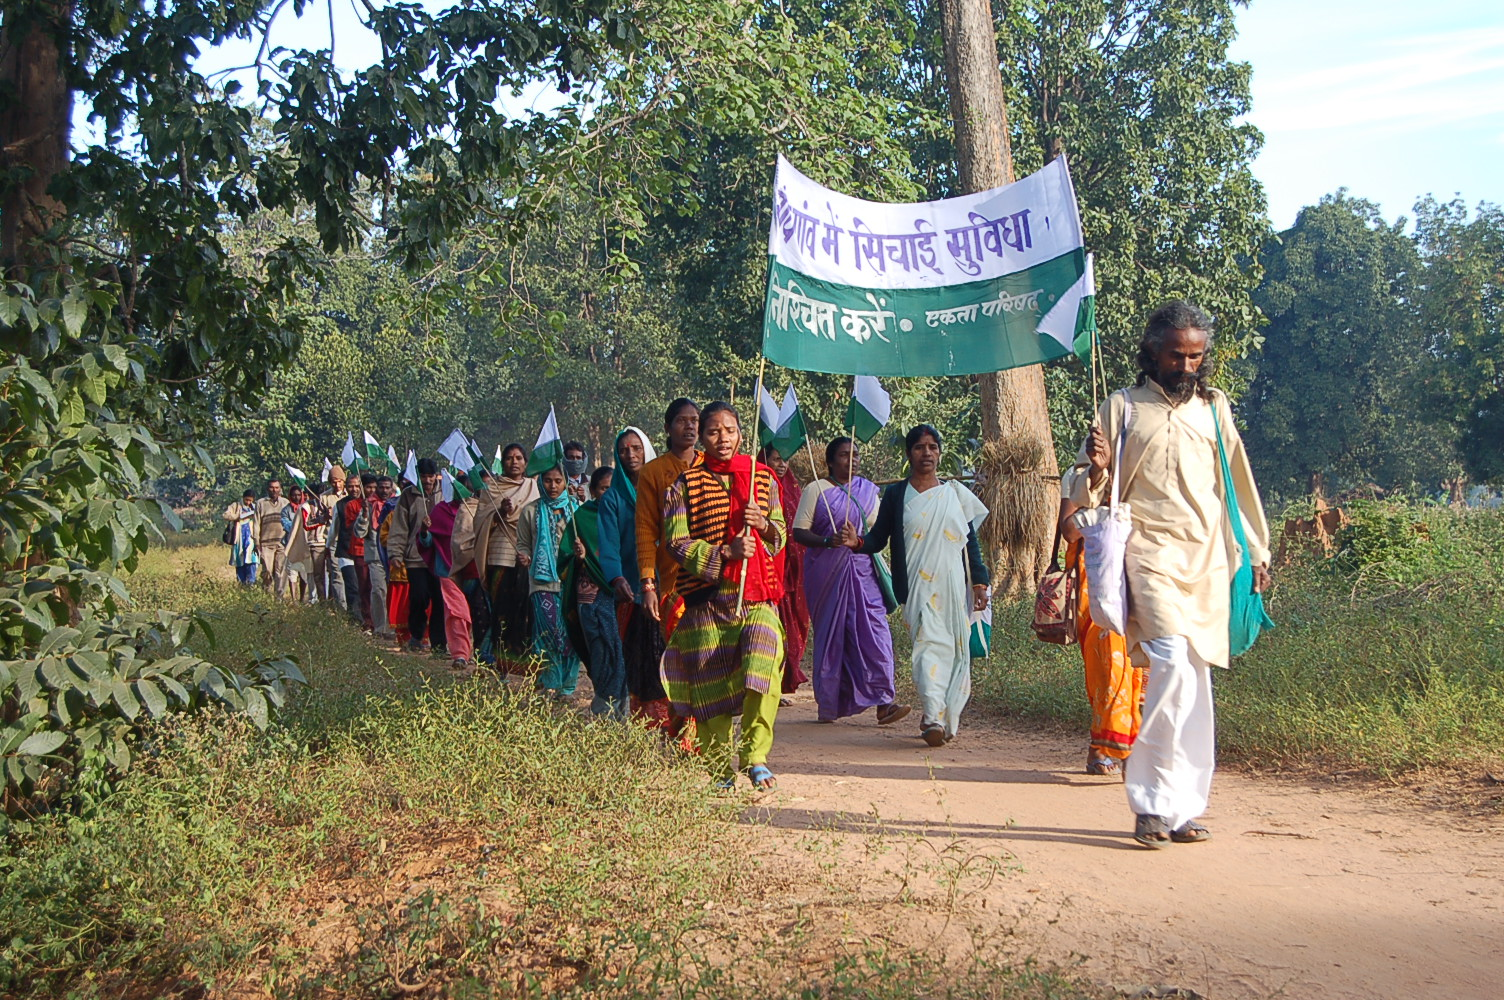 ekta_parishad_walk_with_banner_chhattisgarh_nov_2005